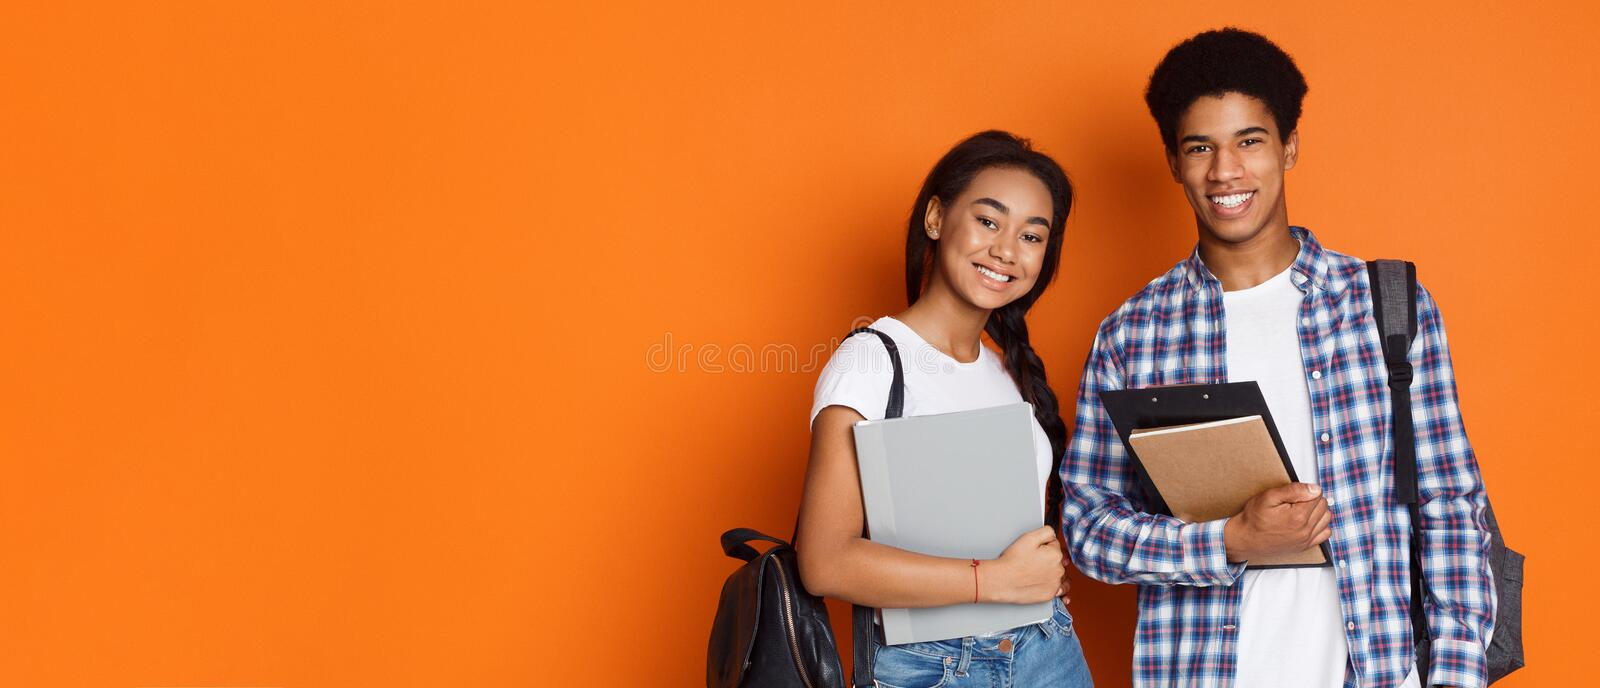 Education concept. Students holding exercise books, empty space royalty free stock photo